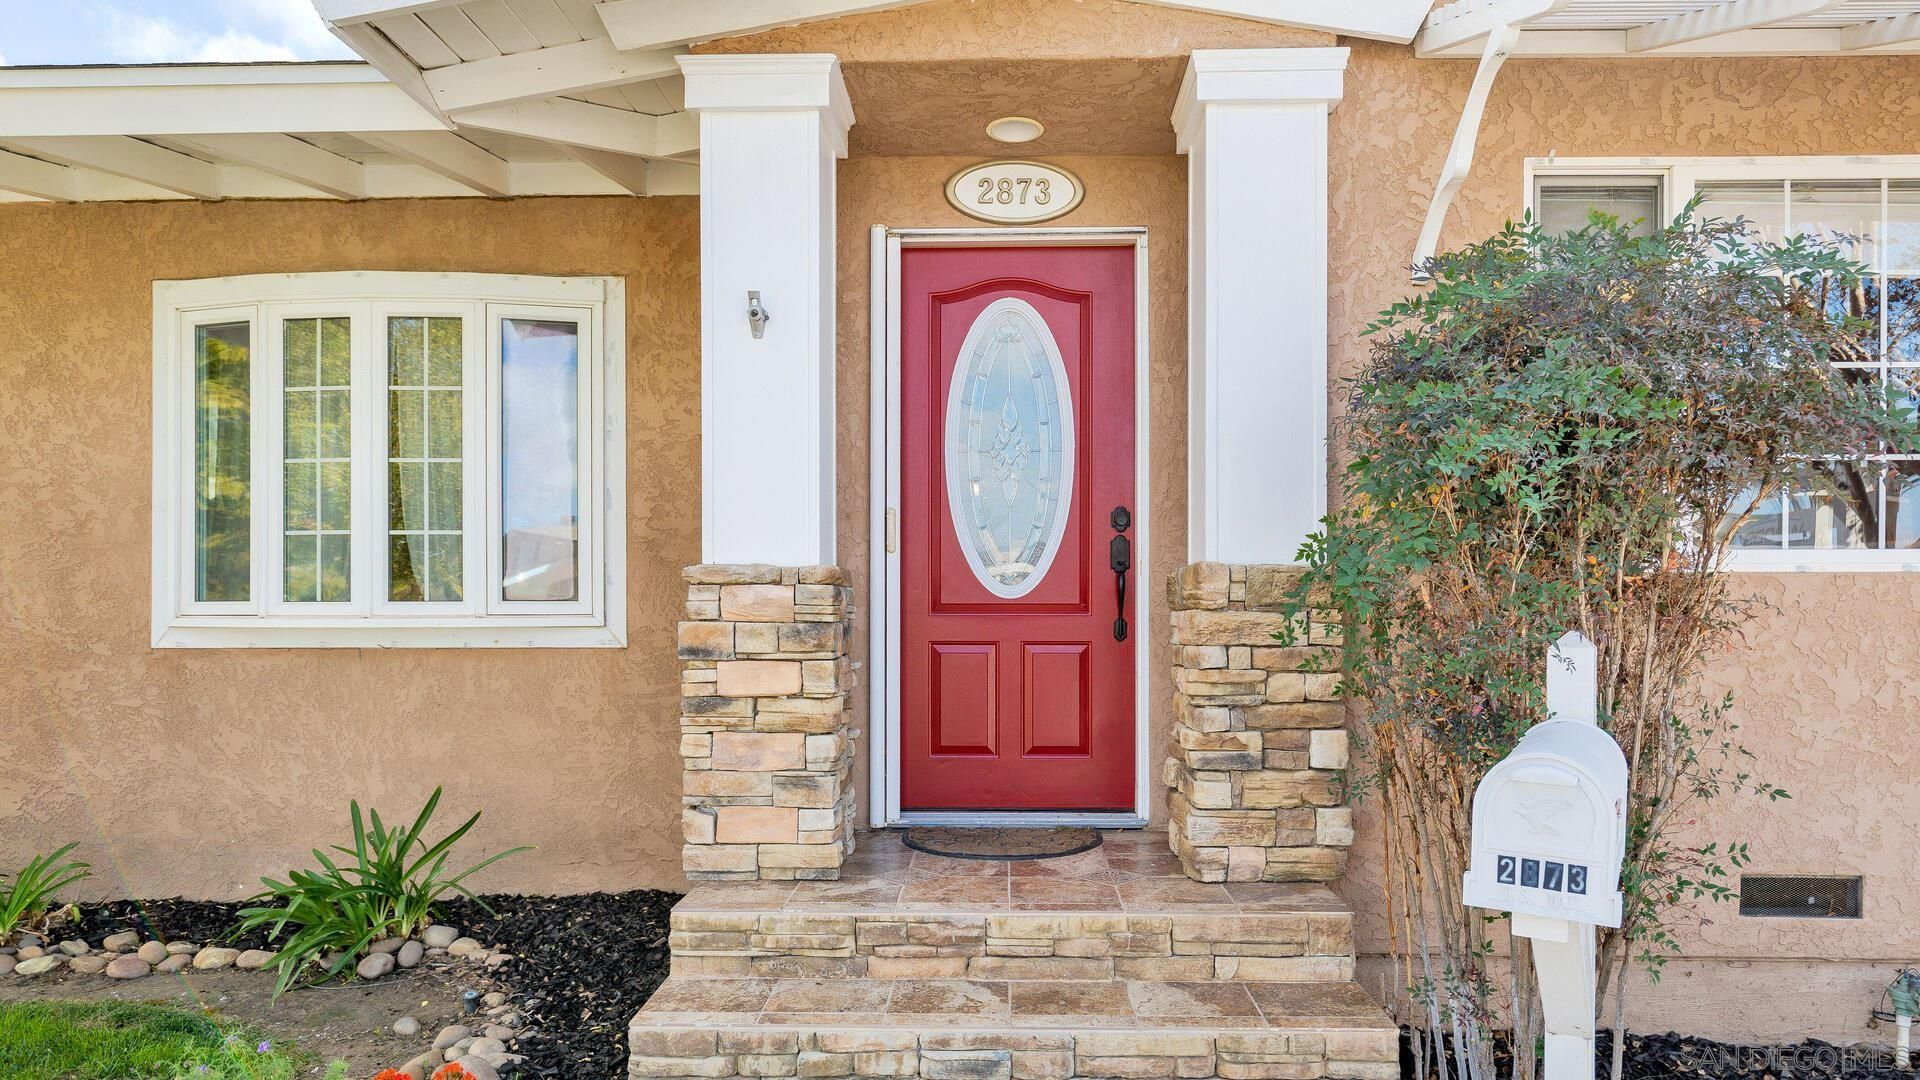 Main Photo: House for sale : 3 bedrooms : 2873 Ridge View Dr. in San Diego